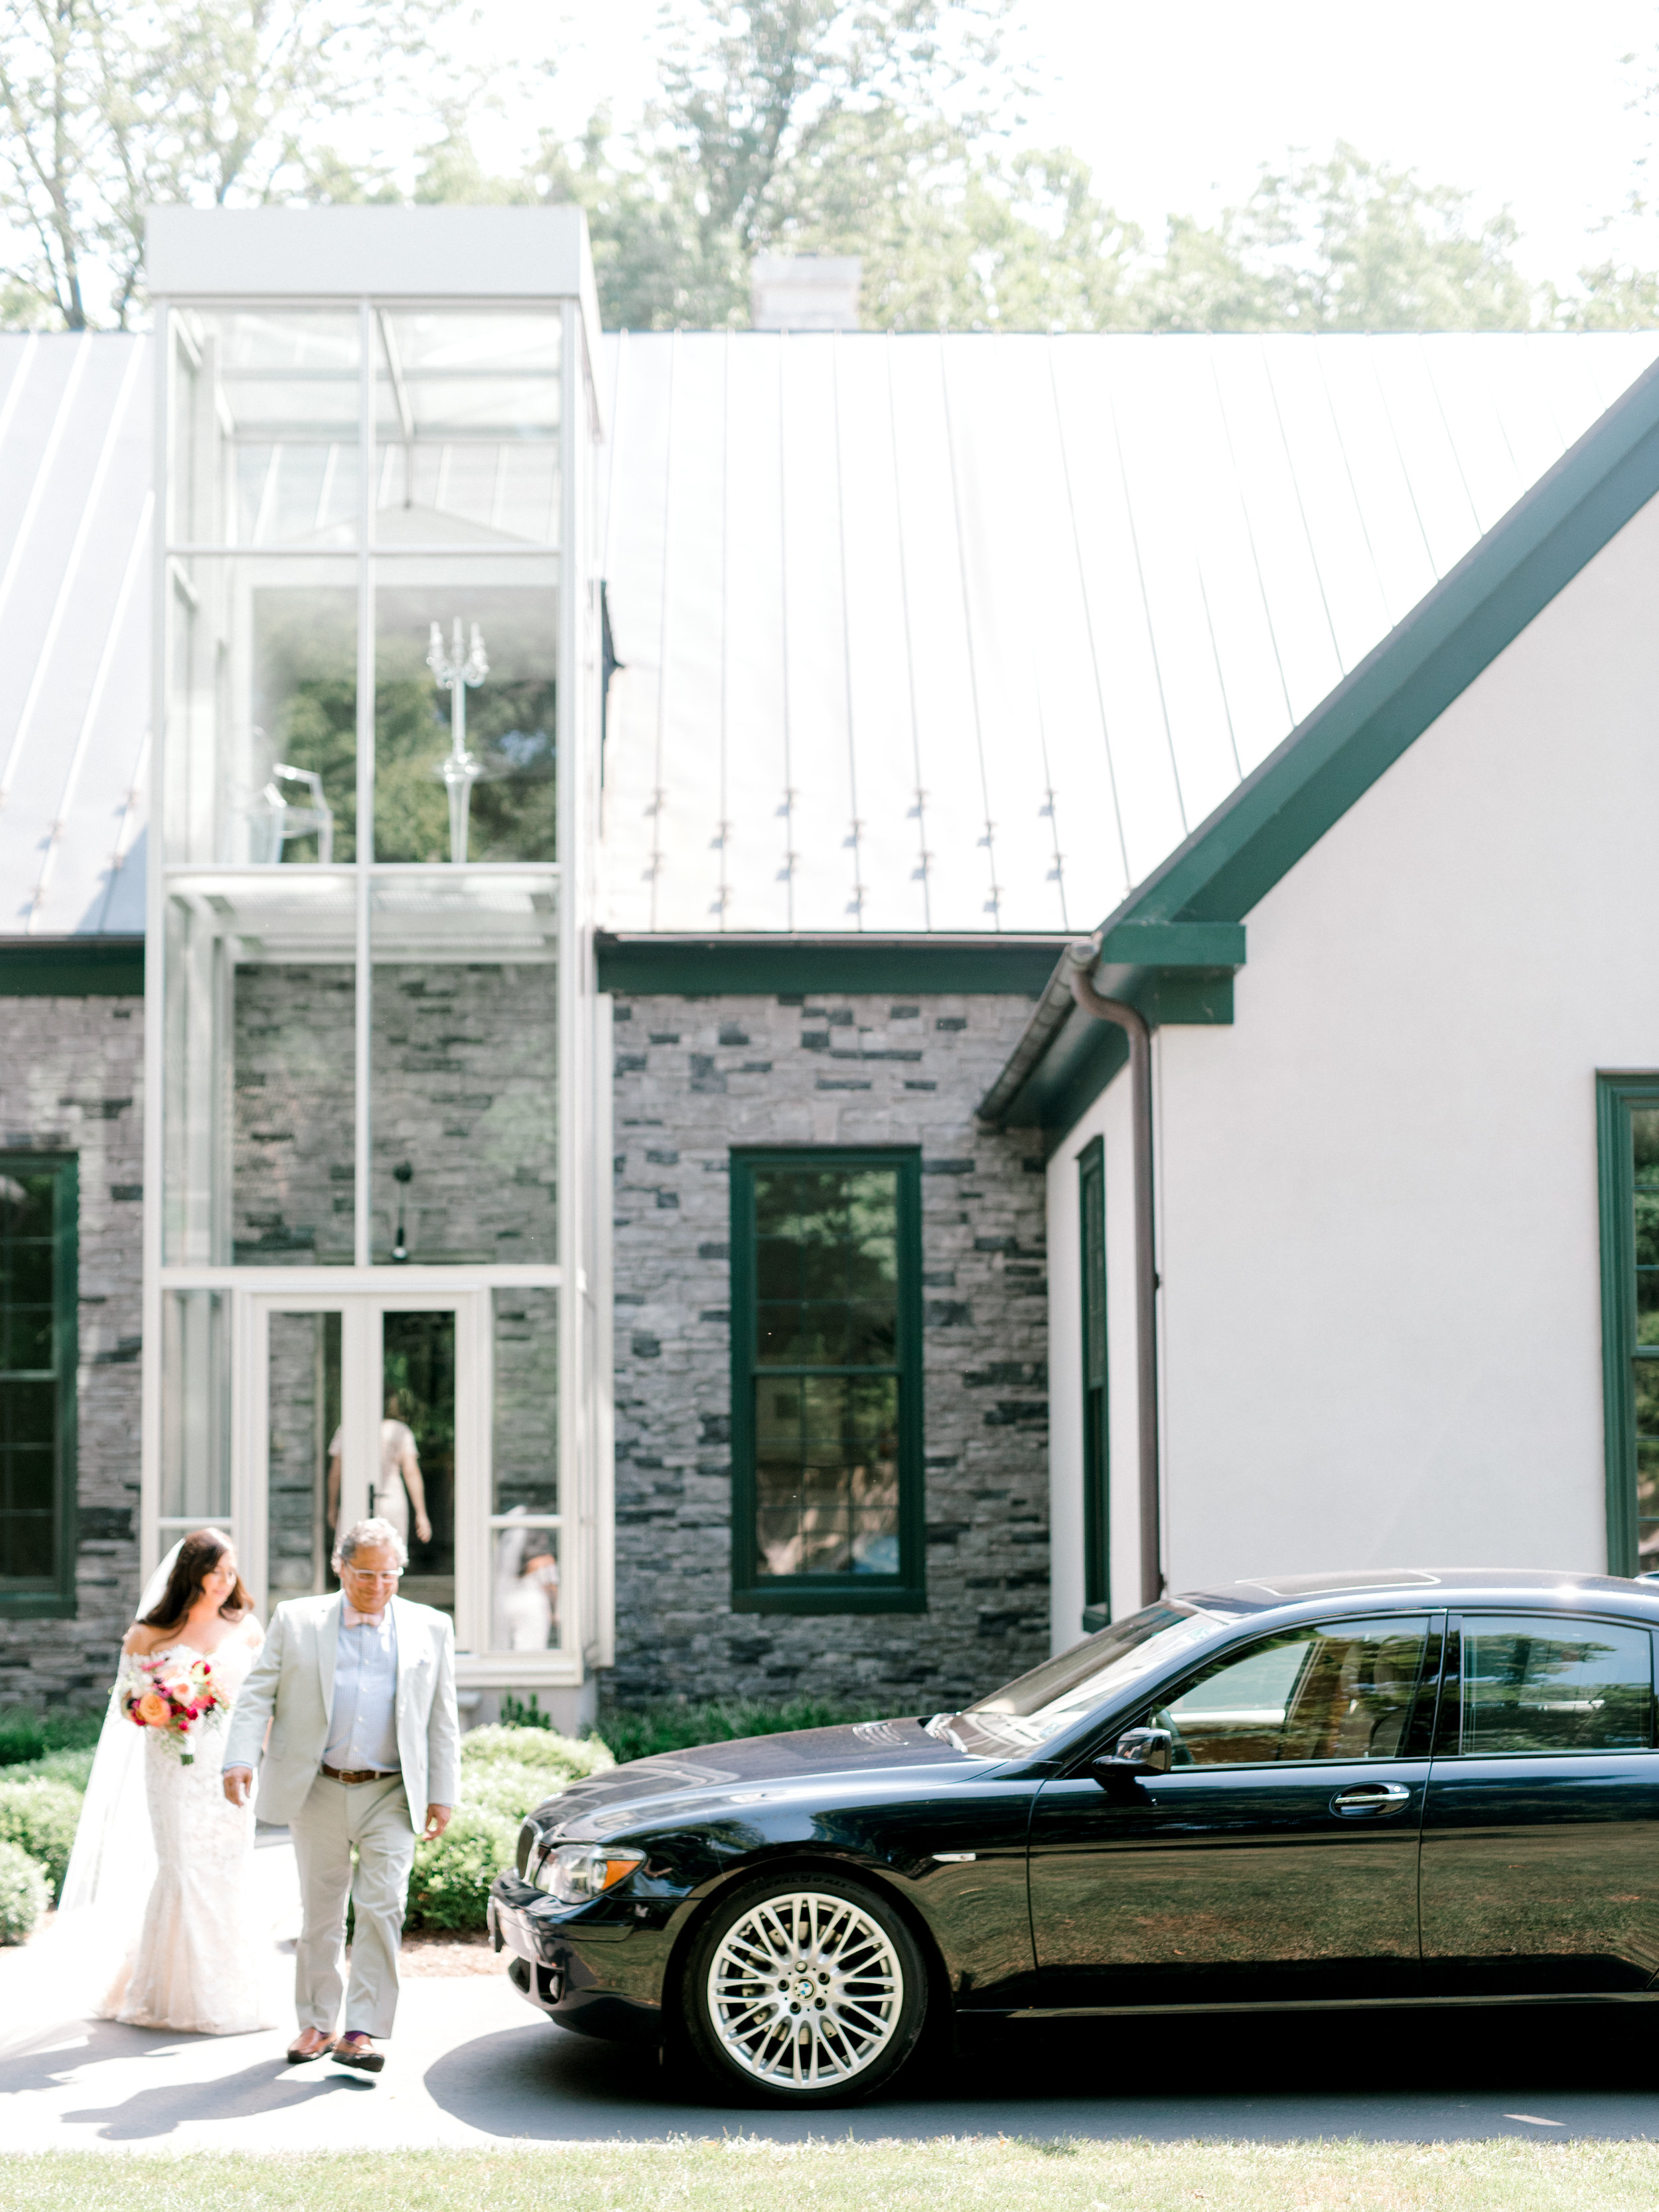 Lindsey and her dad head out to Hotel du Village for Lindsey's colorful and modern summer wedding day.